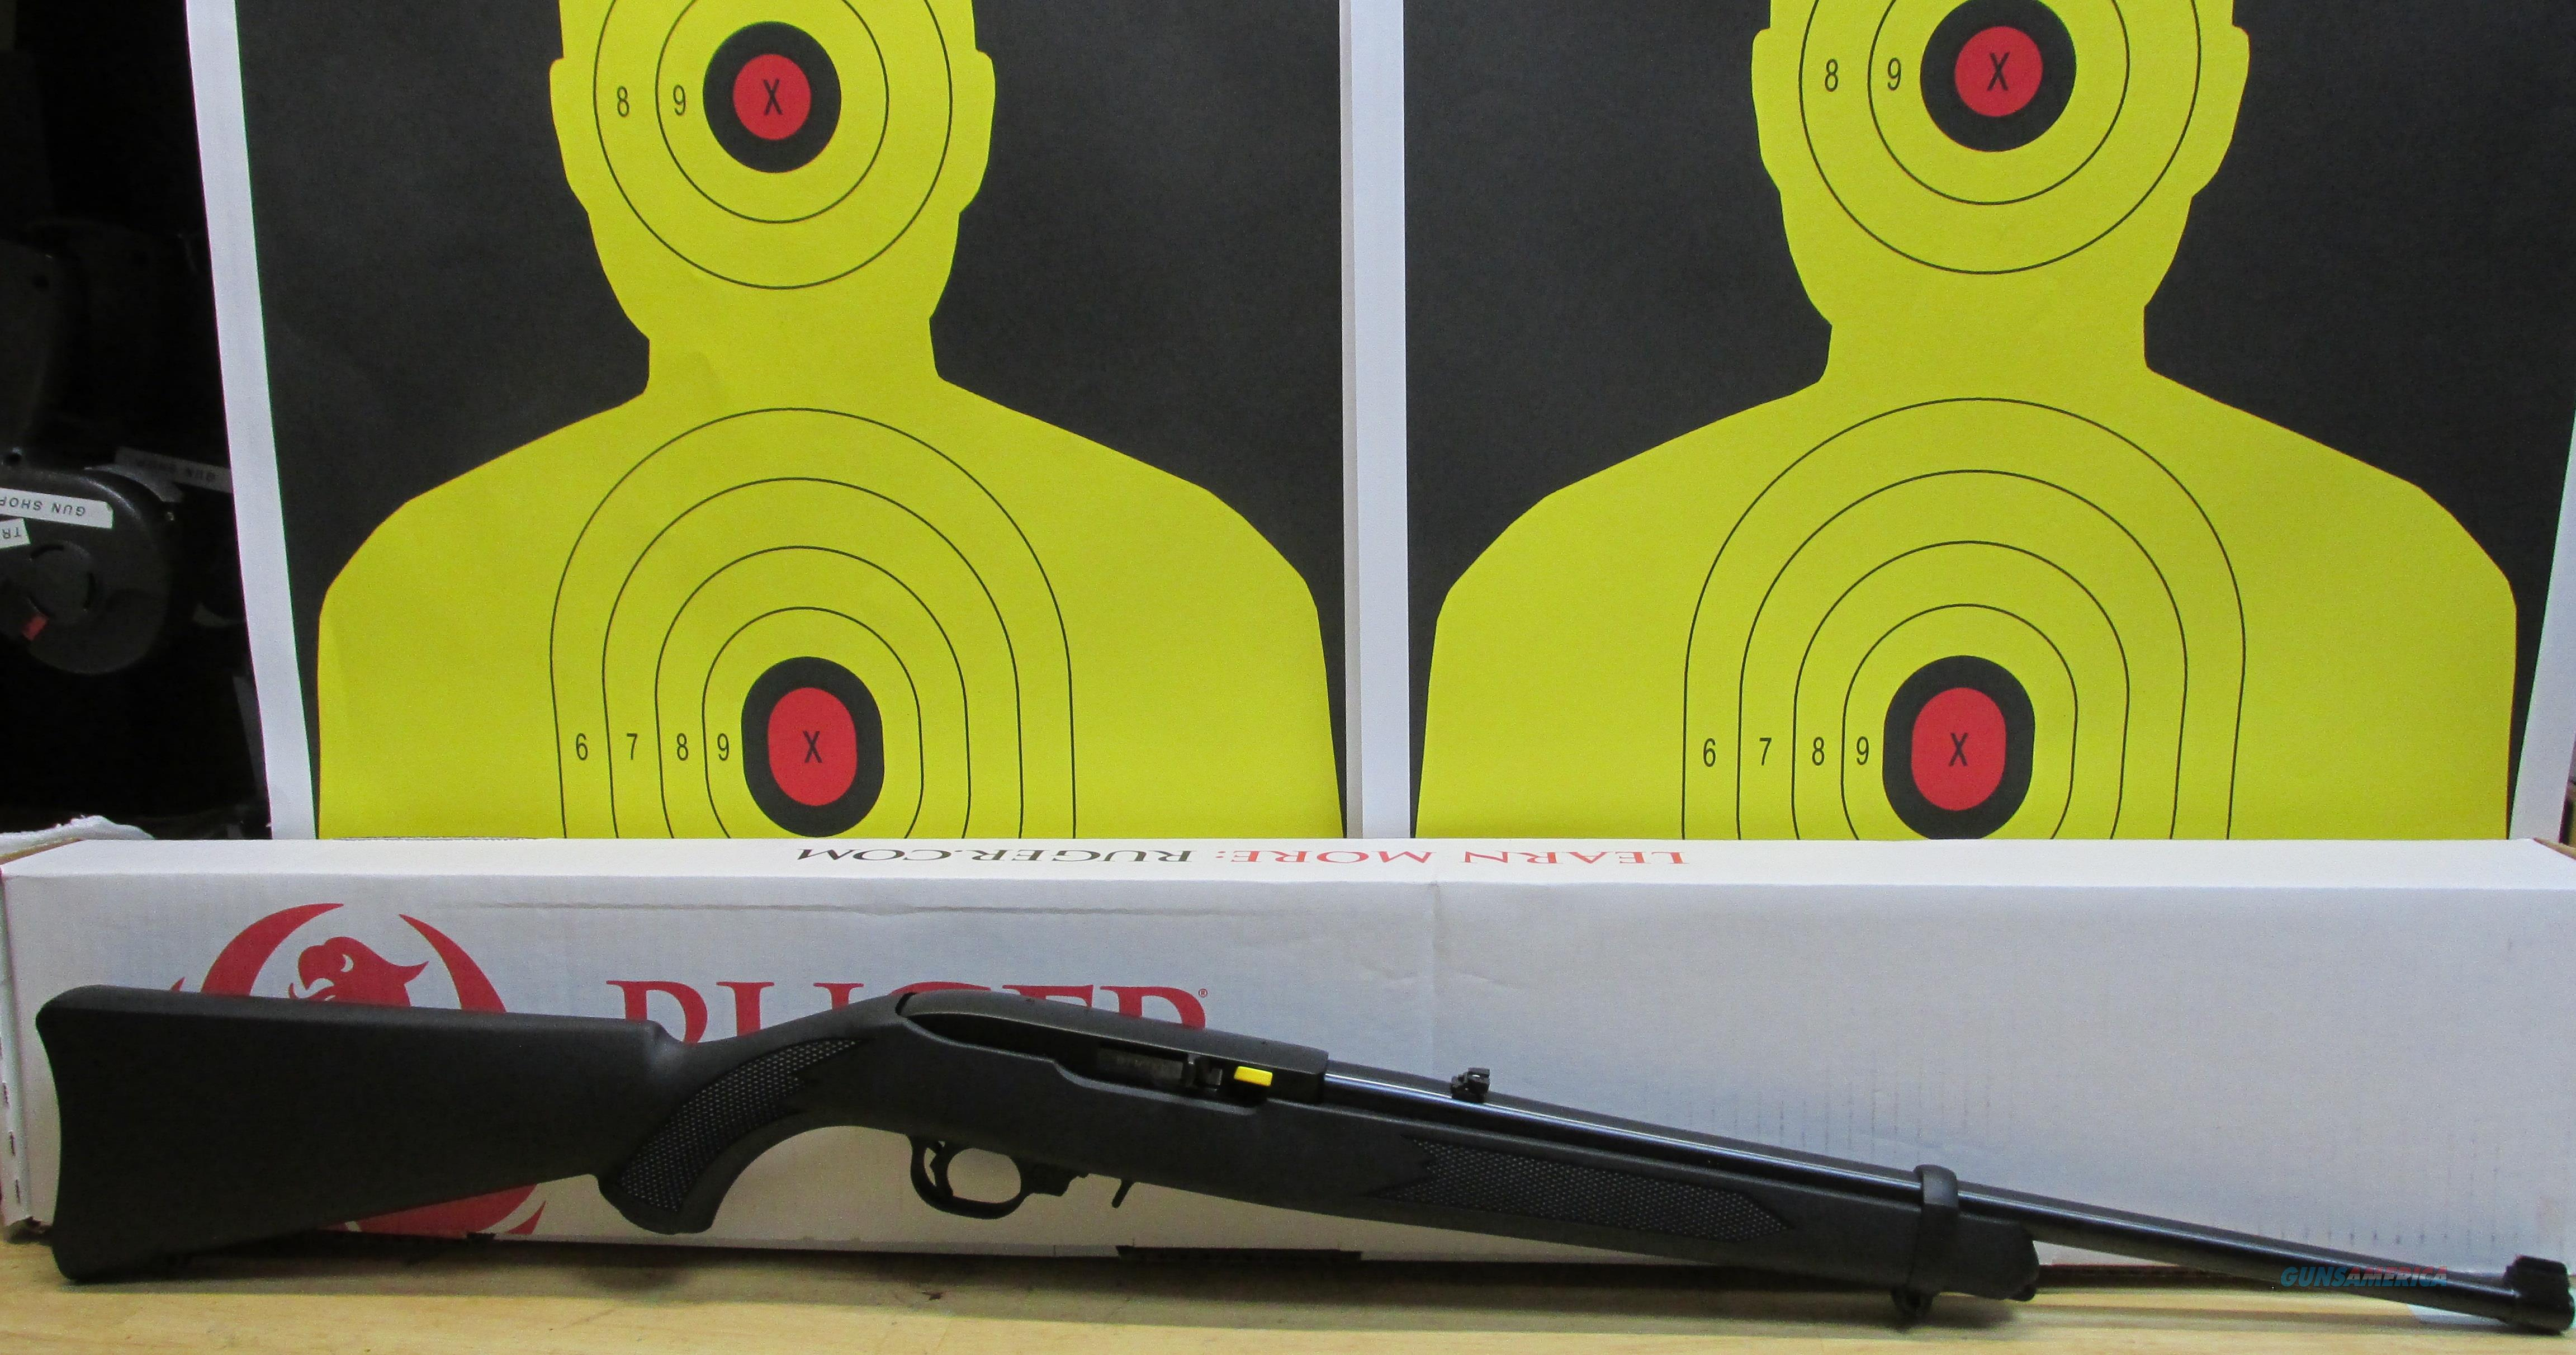 "RUGER 10/22 .22LR RIFLE BLACK SYNTHETIC STOCK, 10 ROUND MAGAZINE, 18"" BARREL  Guns > Rifles > Ruger Rifles > 10-22"